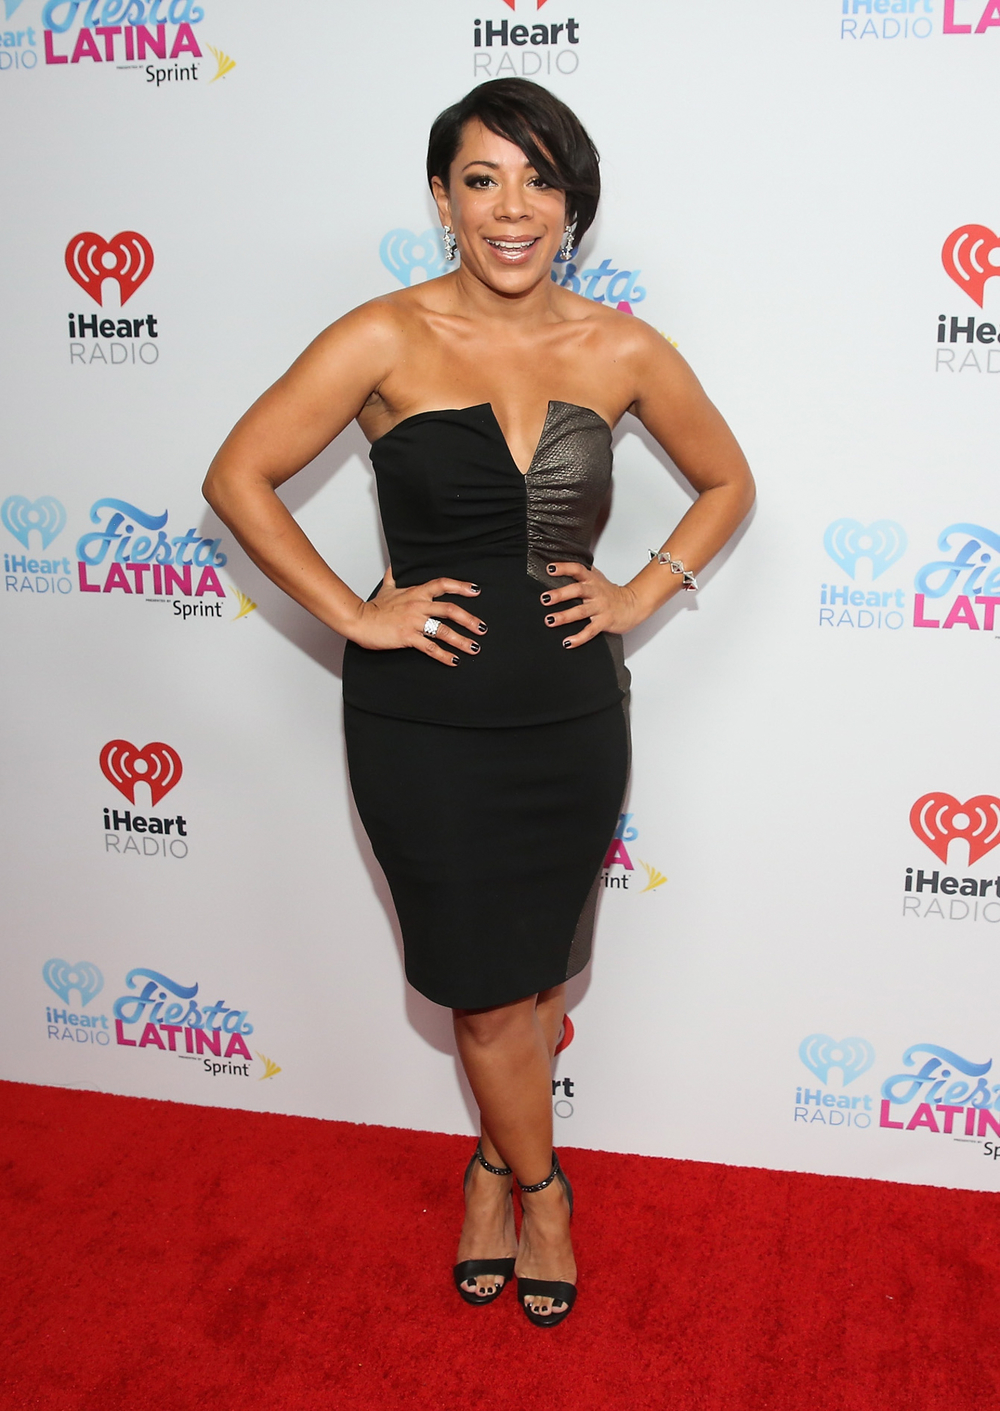 MIAMI, FL - NOVEMBER 07:  Actress Selenis Leyva attends iHeartRadio Fiesta Latina presented by Sprint at American Airlines Arena on November 7, 2015 in Miami, Florida.  (Photo by Aaron Davidson/Getty Images for iHeartMedia) *** Local Caption *** Selenis Leyva